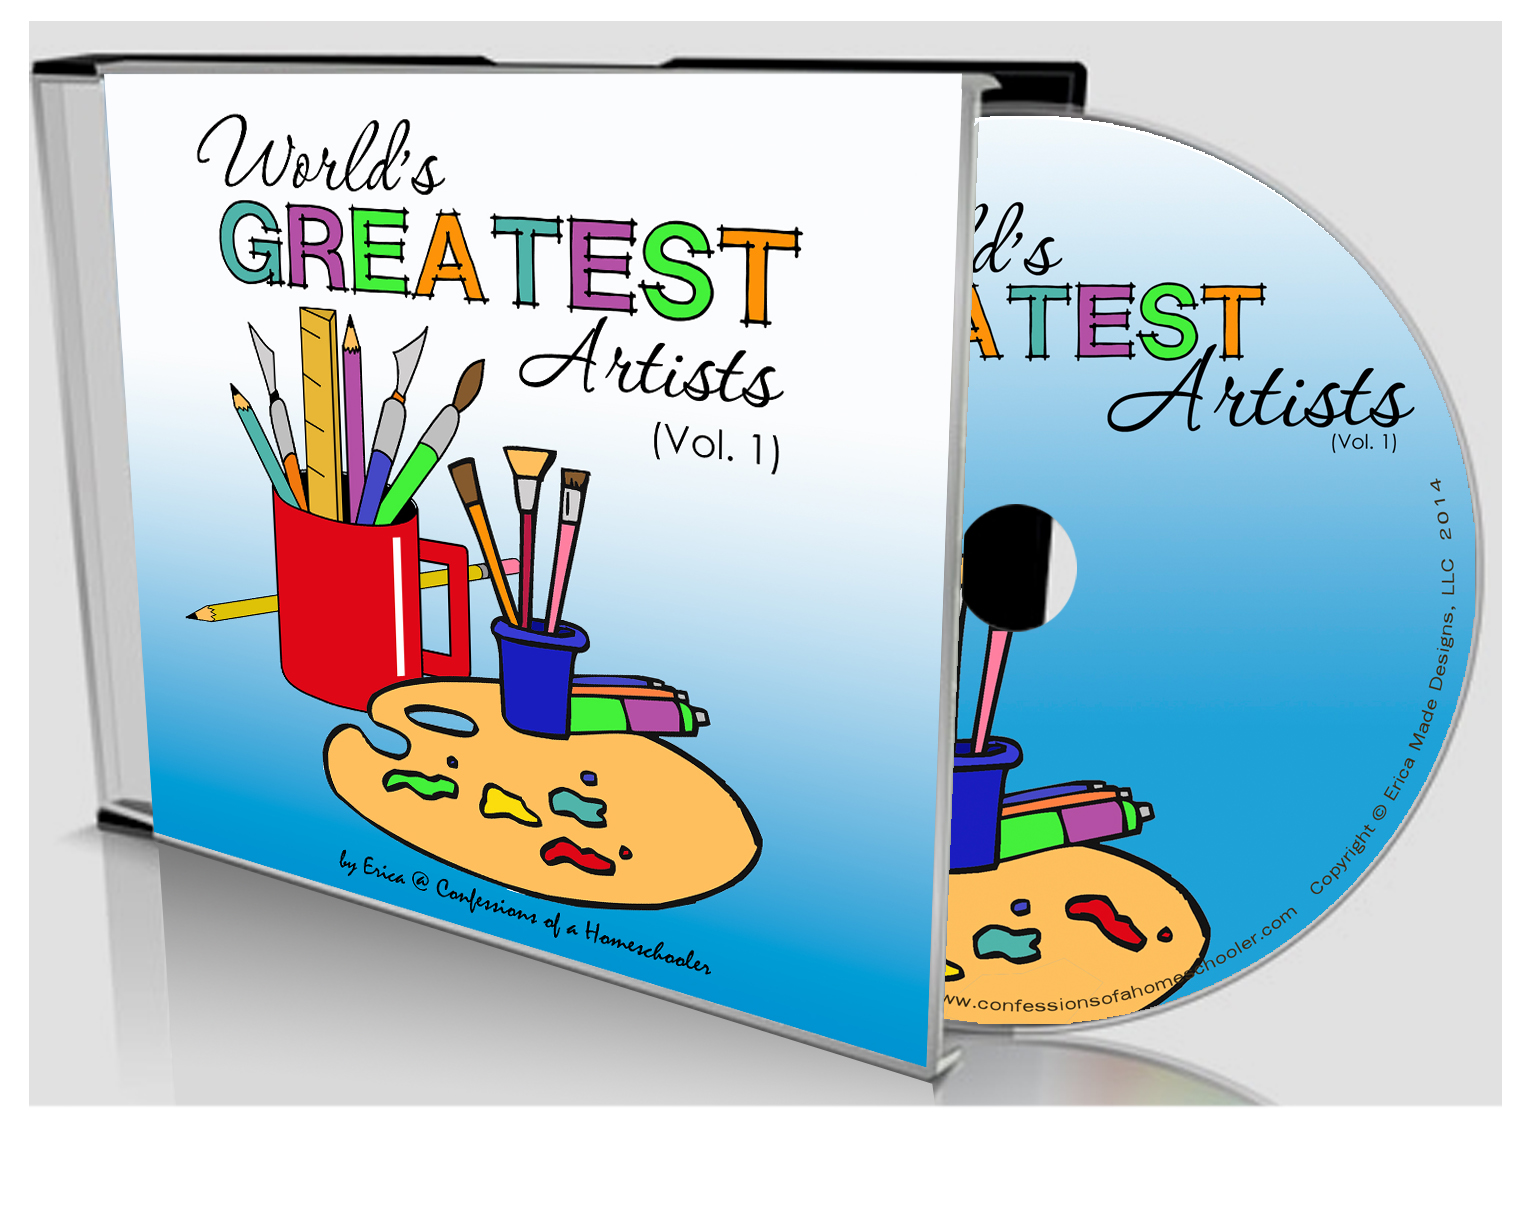 World's Greatest Artists 1 - CD